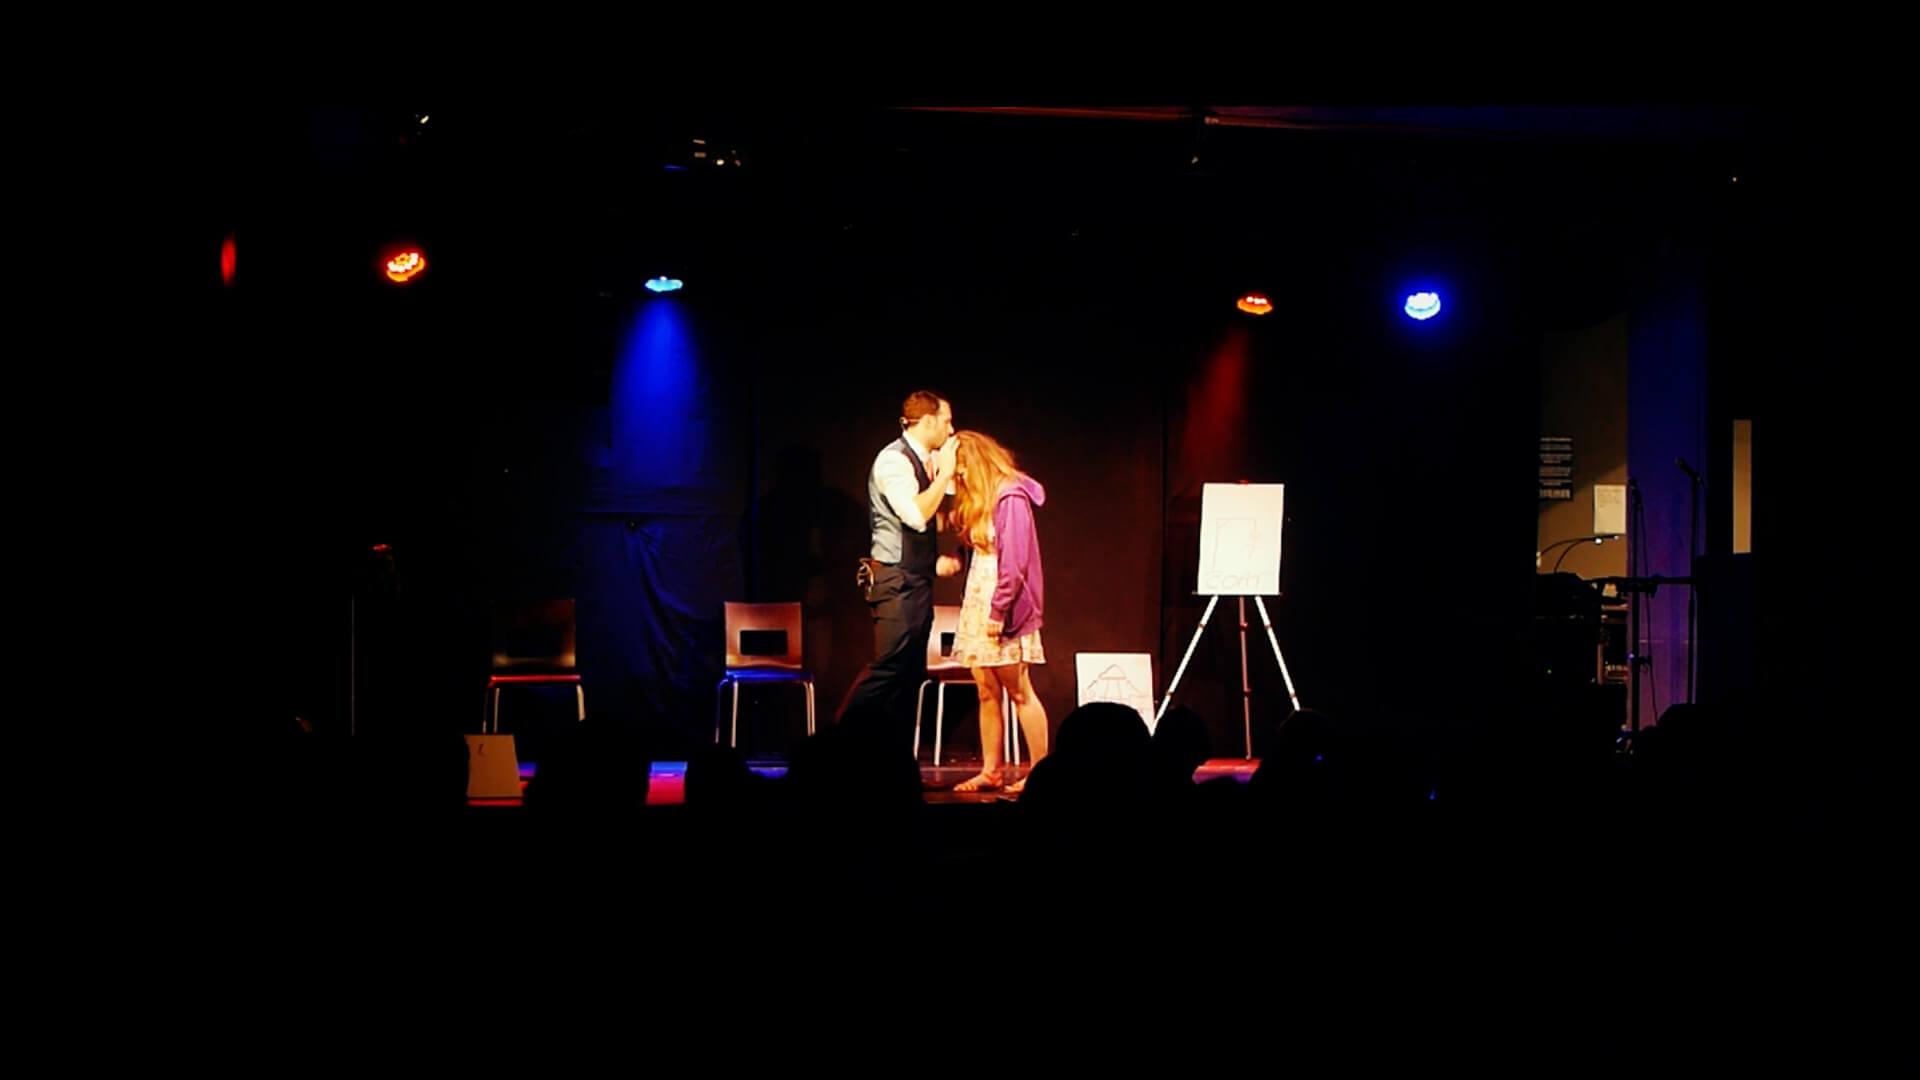 Aaron hypnotising lady on stage at edinburgh fringe magic show